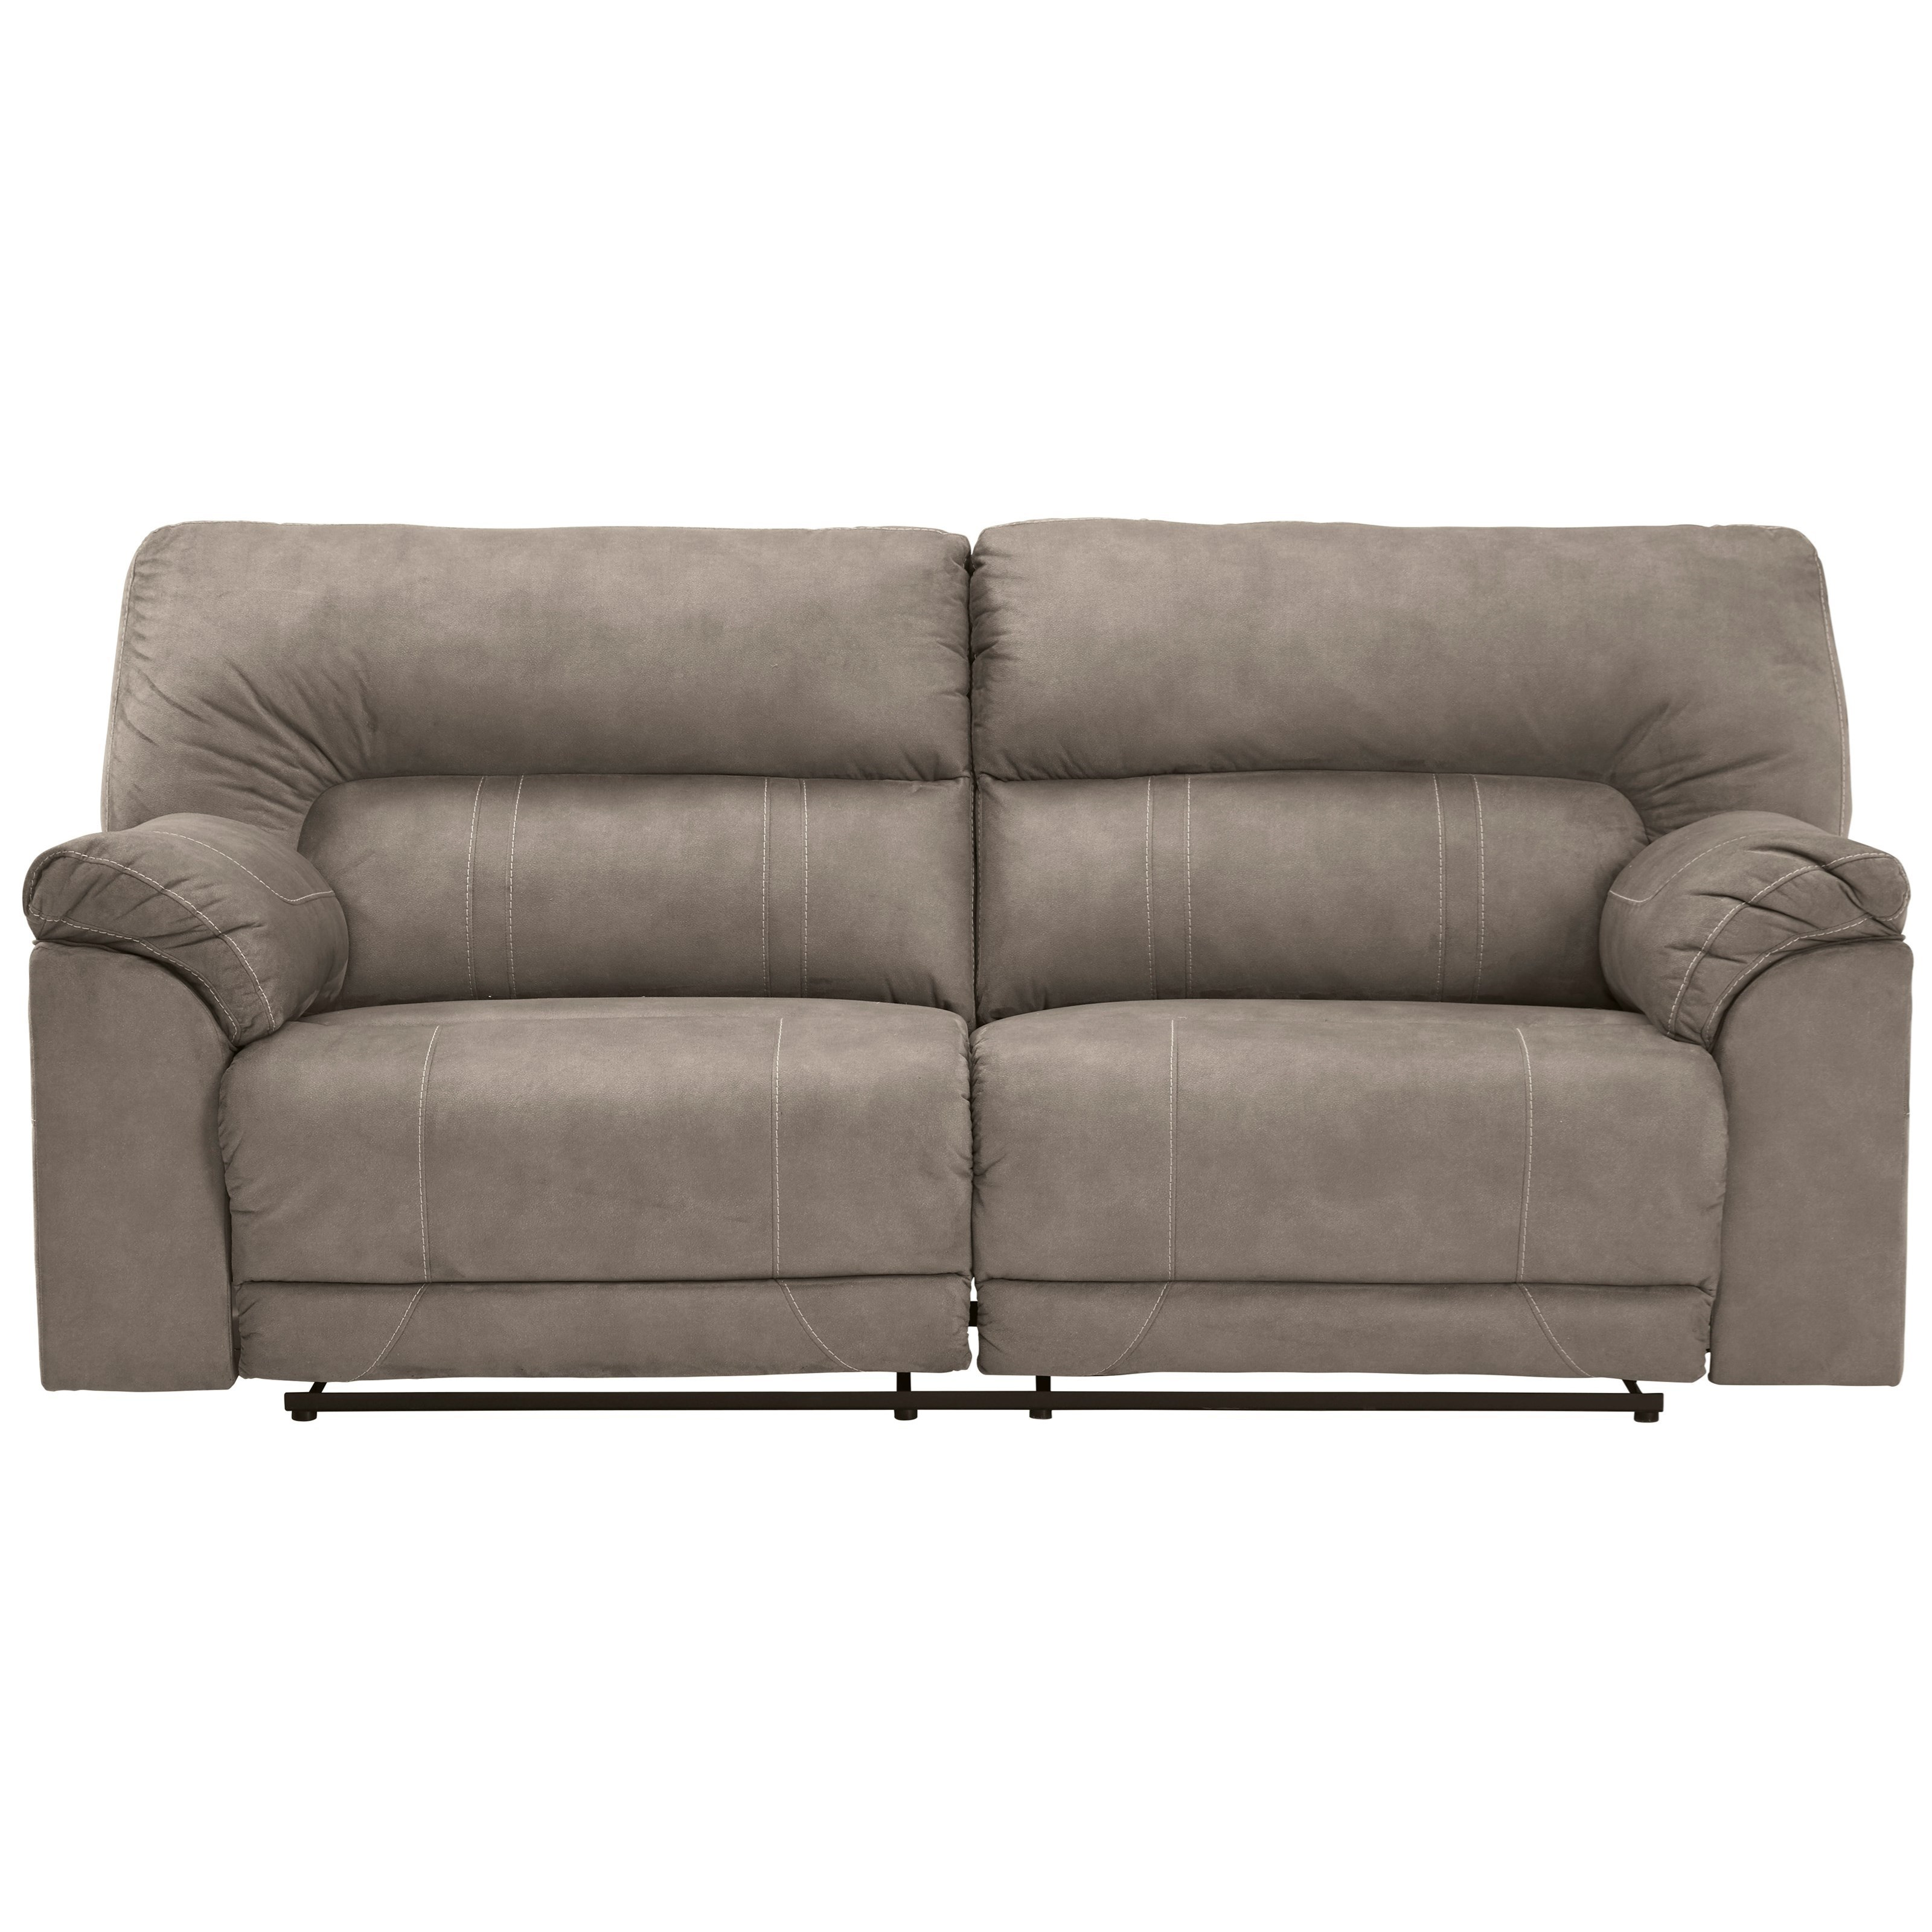 Cavalcade Two-Seat Reclining Sofa by Benchcraft at Miller Waldrop Furniture and Decor